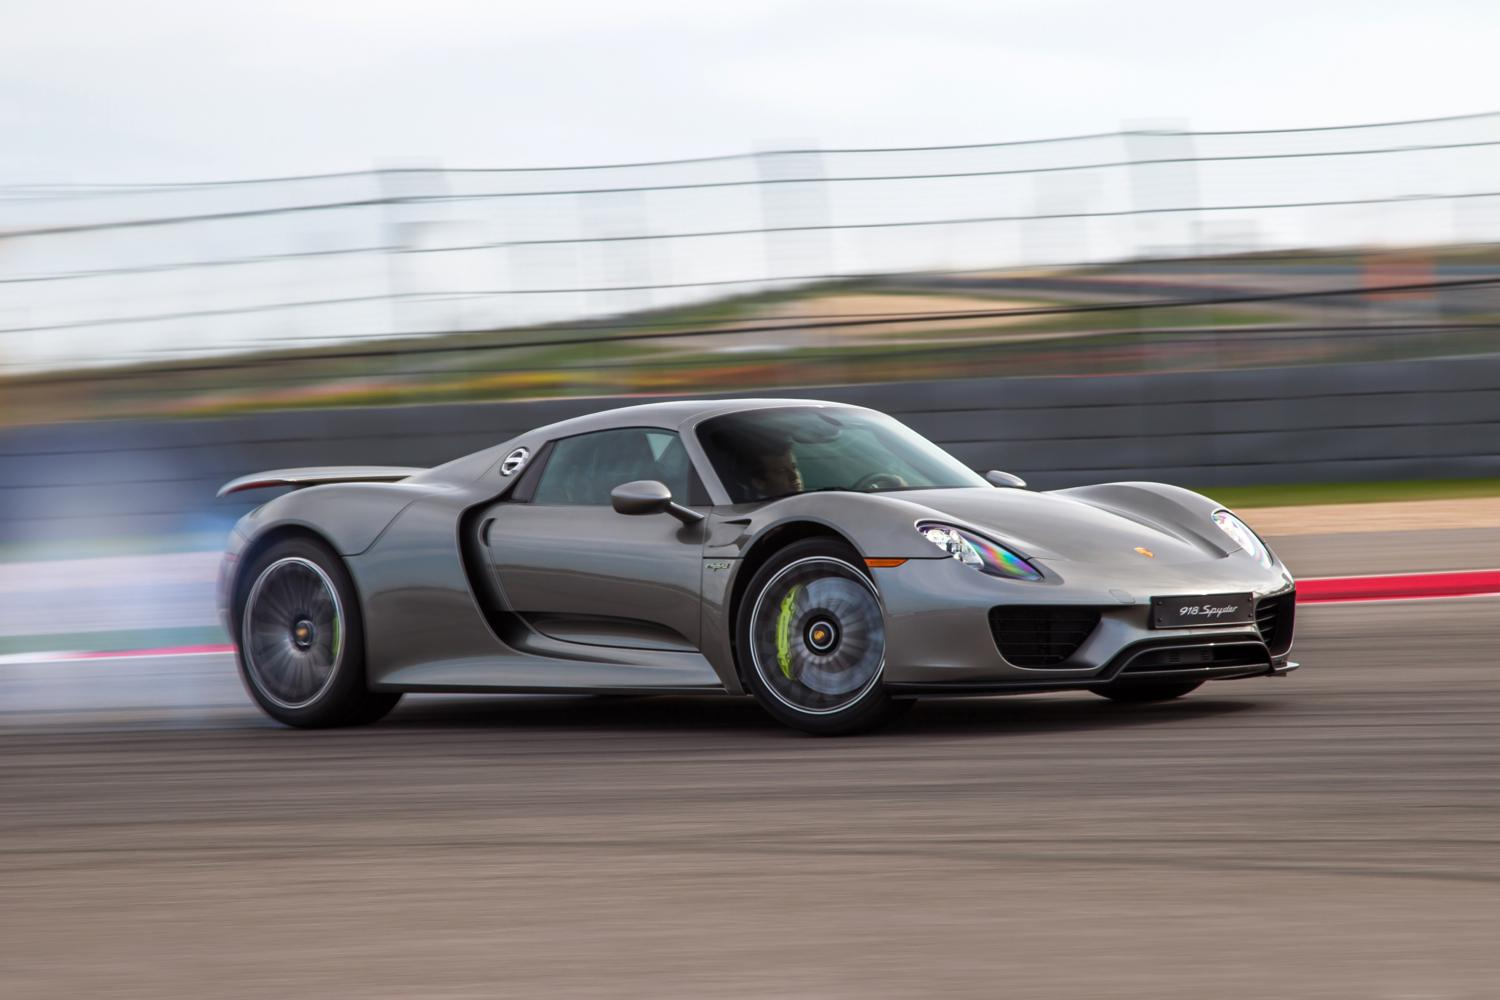 Fastest Accelerating Cars To 60 Mph Top 10 List